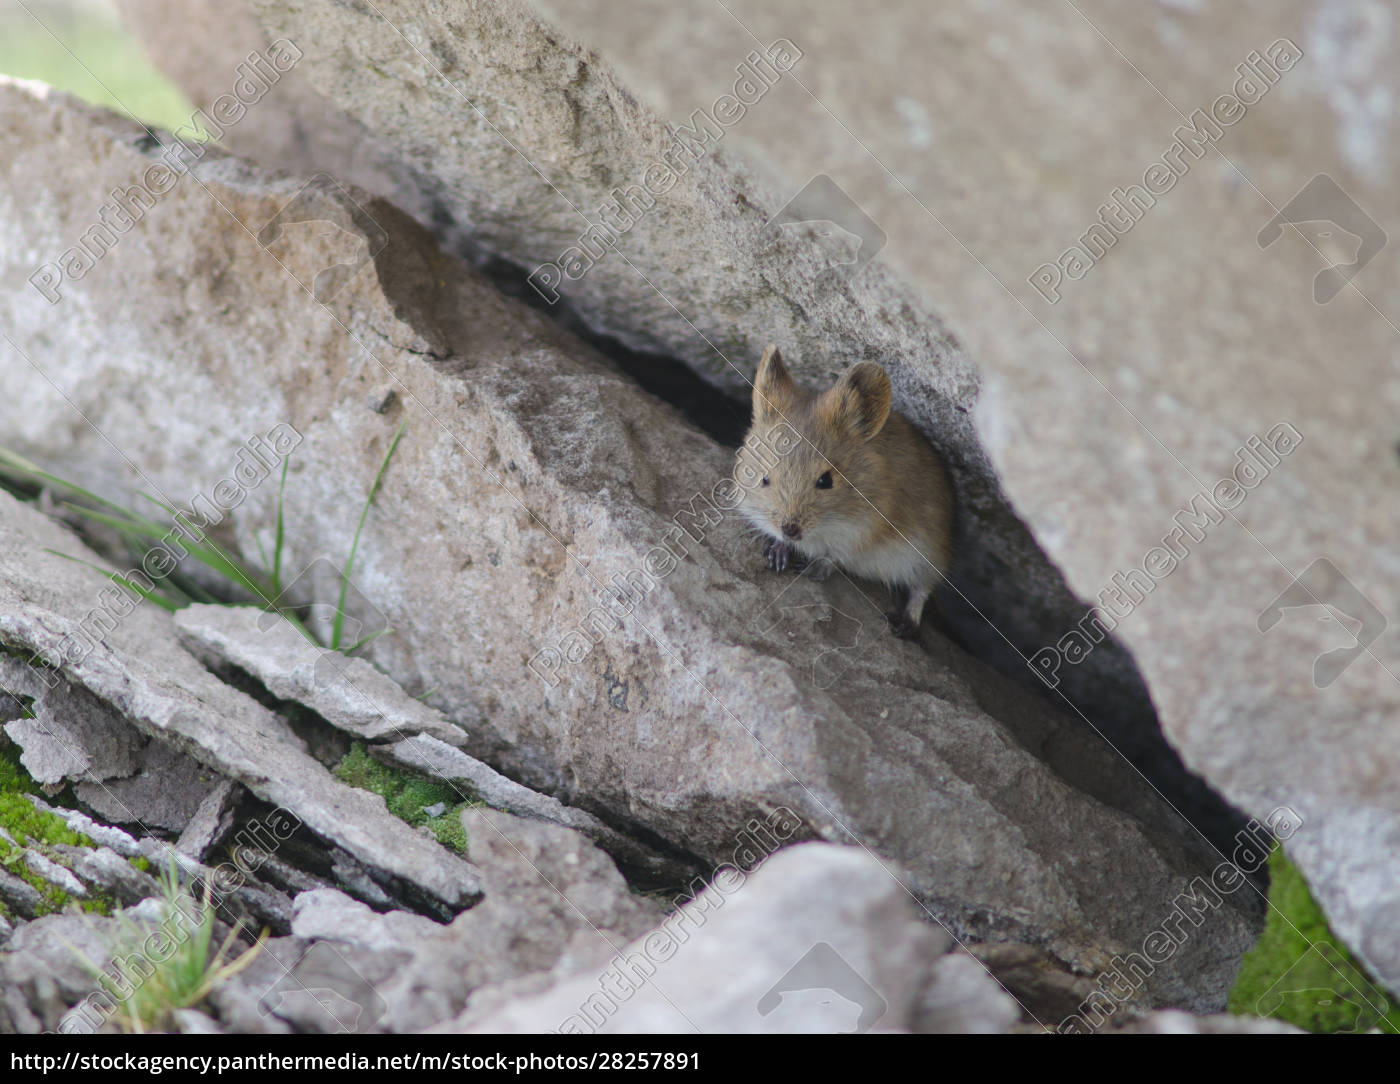 bolivian, big-eared, mouse, auliscomys, boliviensis, at - 28257891